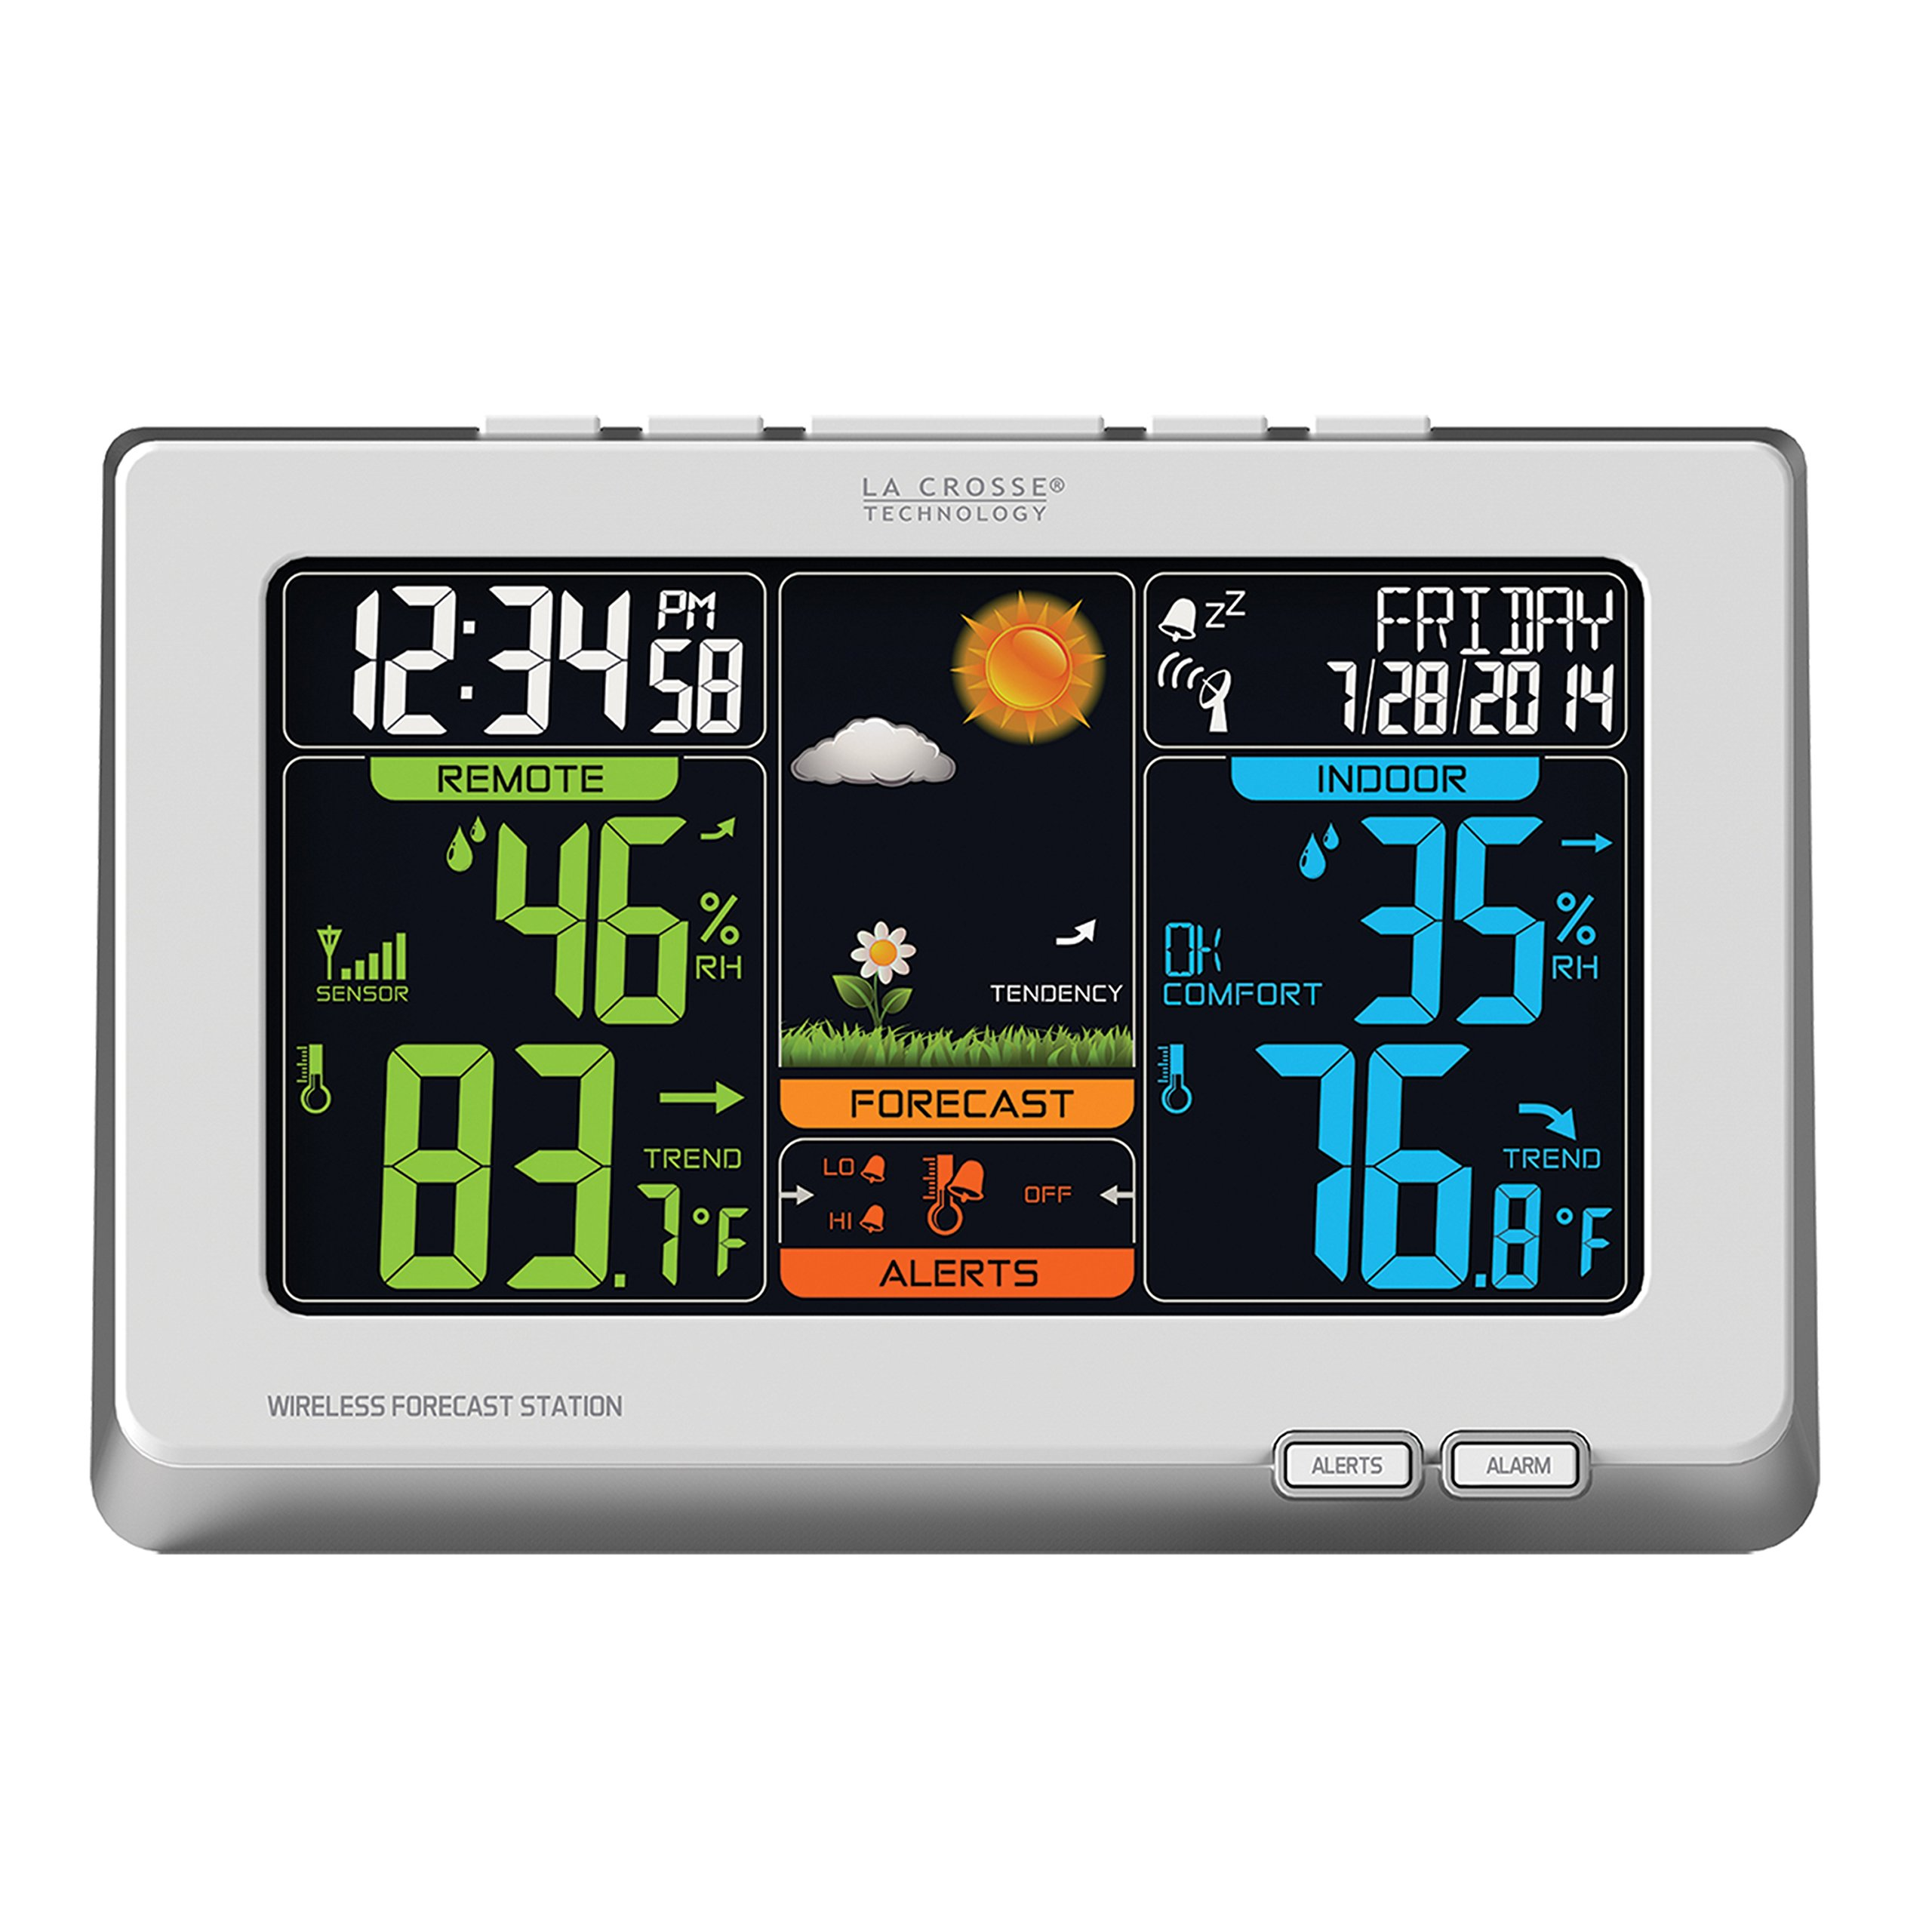 La Crosse Technology (C83332) Wireless Atomic Digital Color Weather Forecast Station with Alerts, 8.34L x 1.03W x 5.48H Inches - White